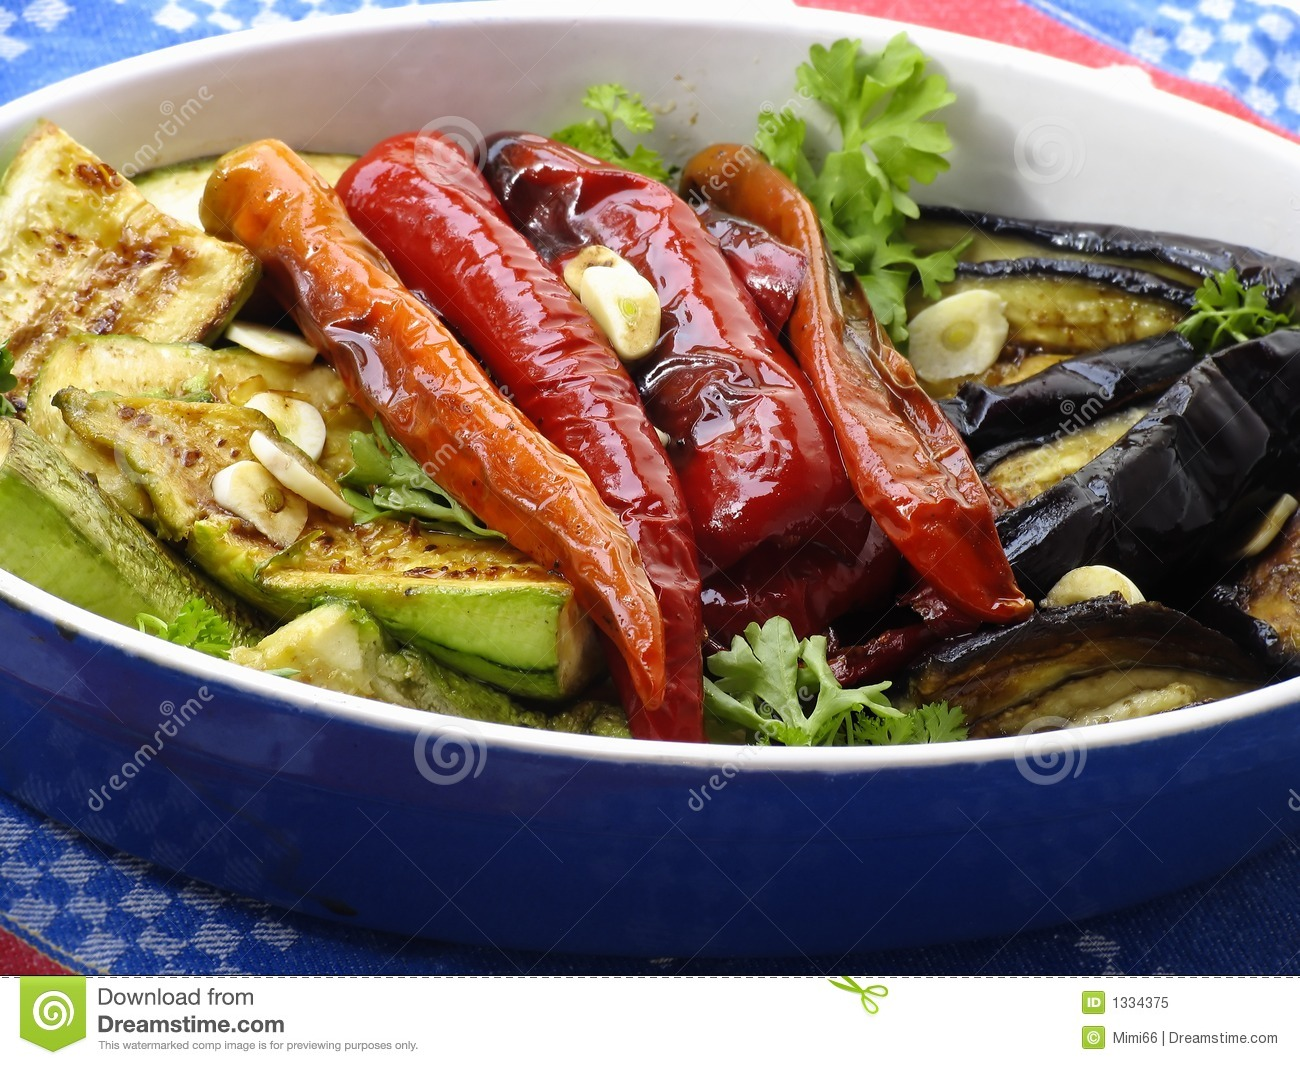 Forum on this topic: Grilled Spicy Eggplant, grilled-spicy-eggplant/